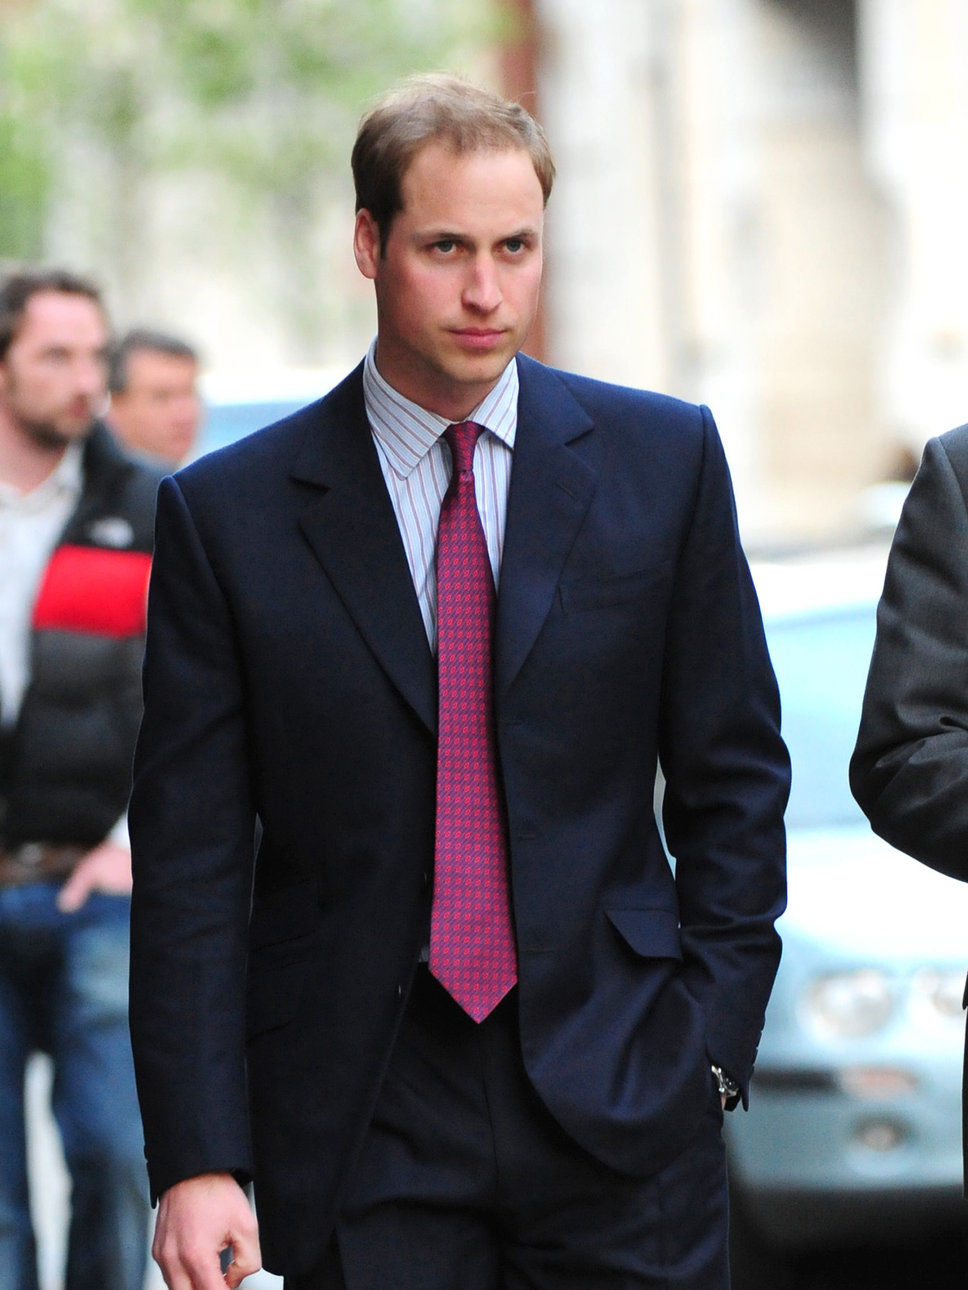 prince-william-of-wales-in-suit